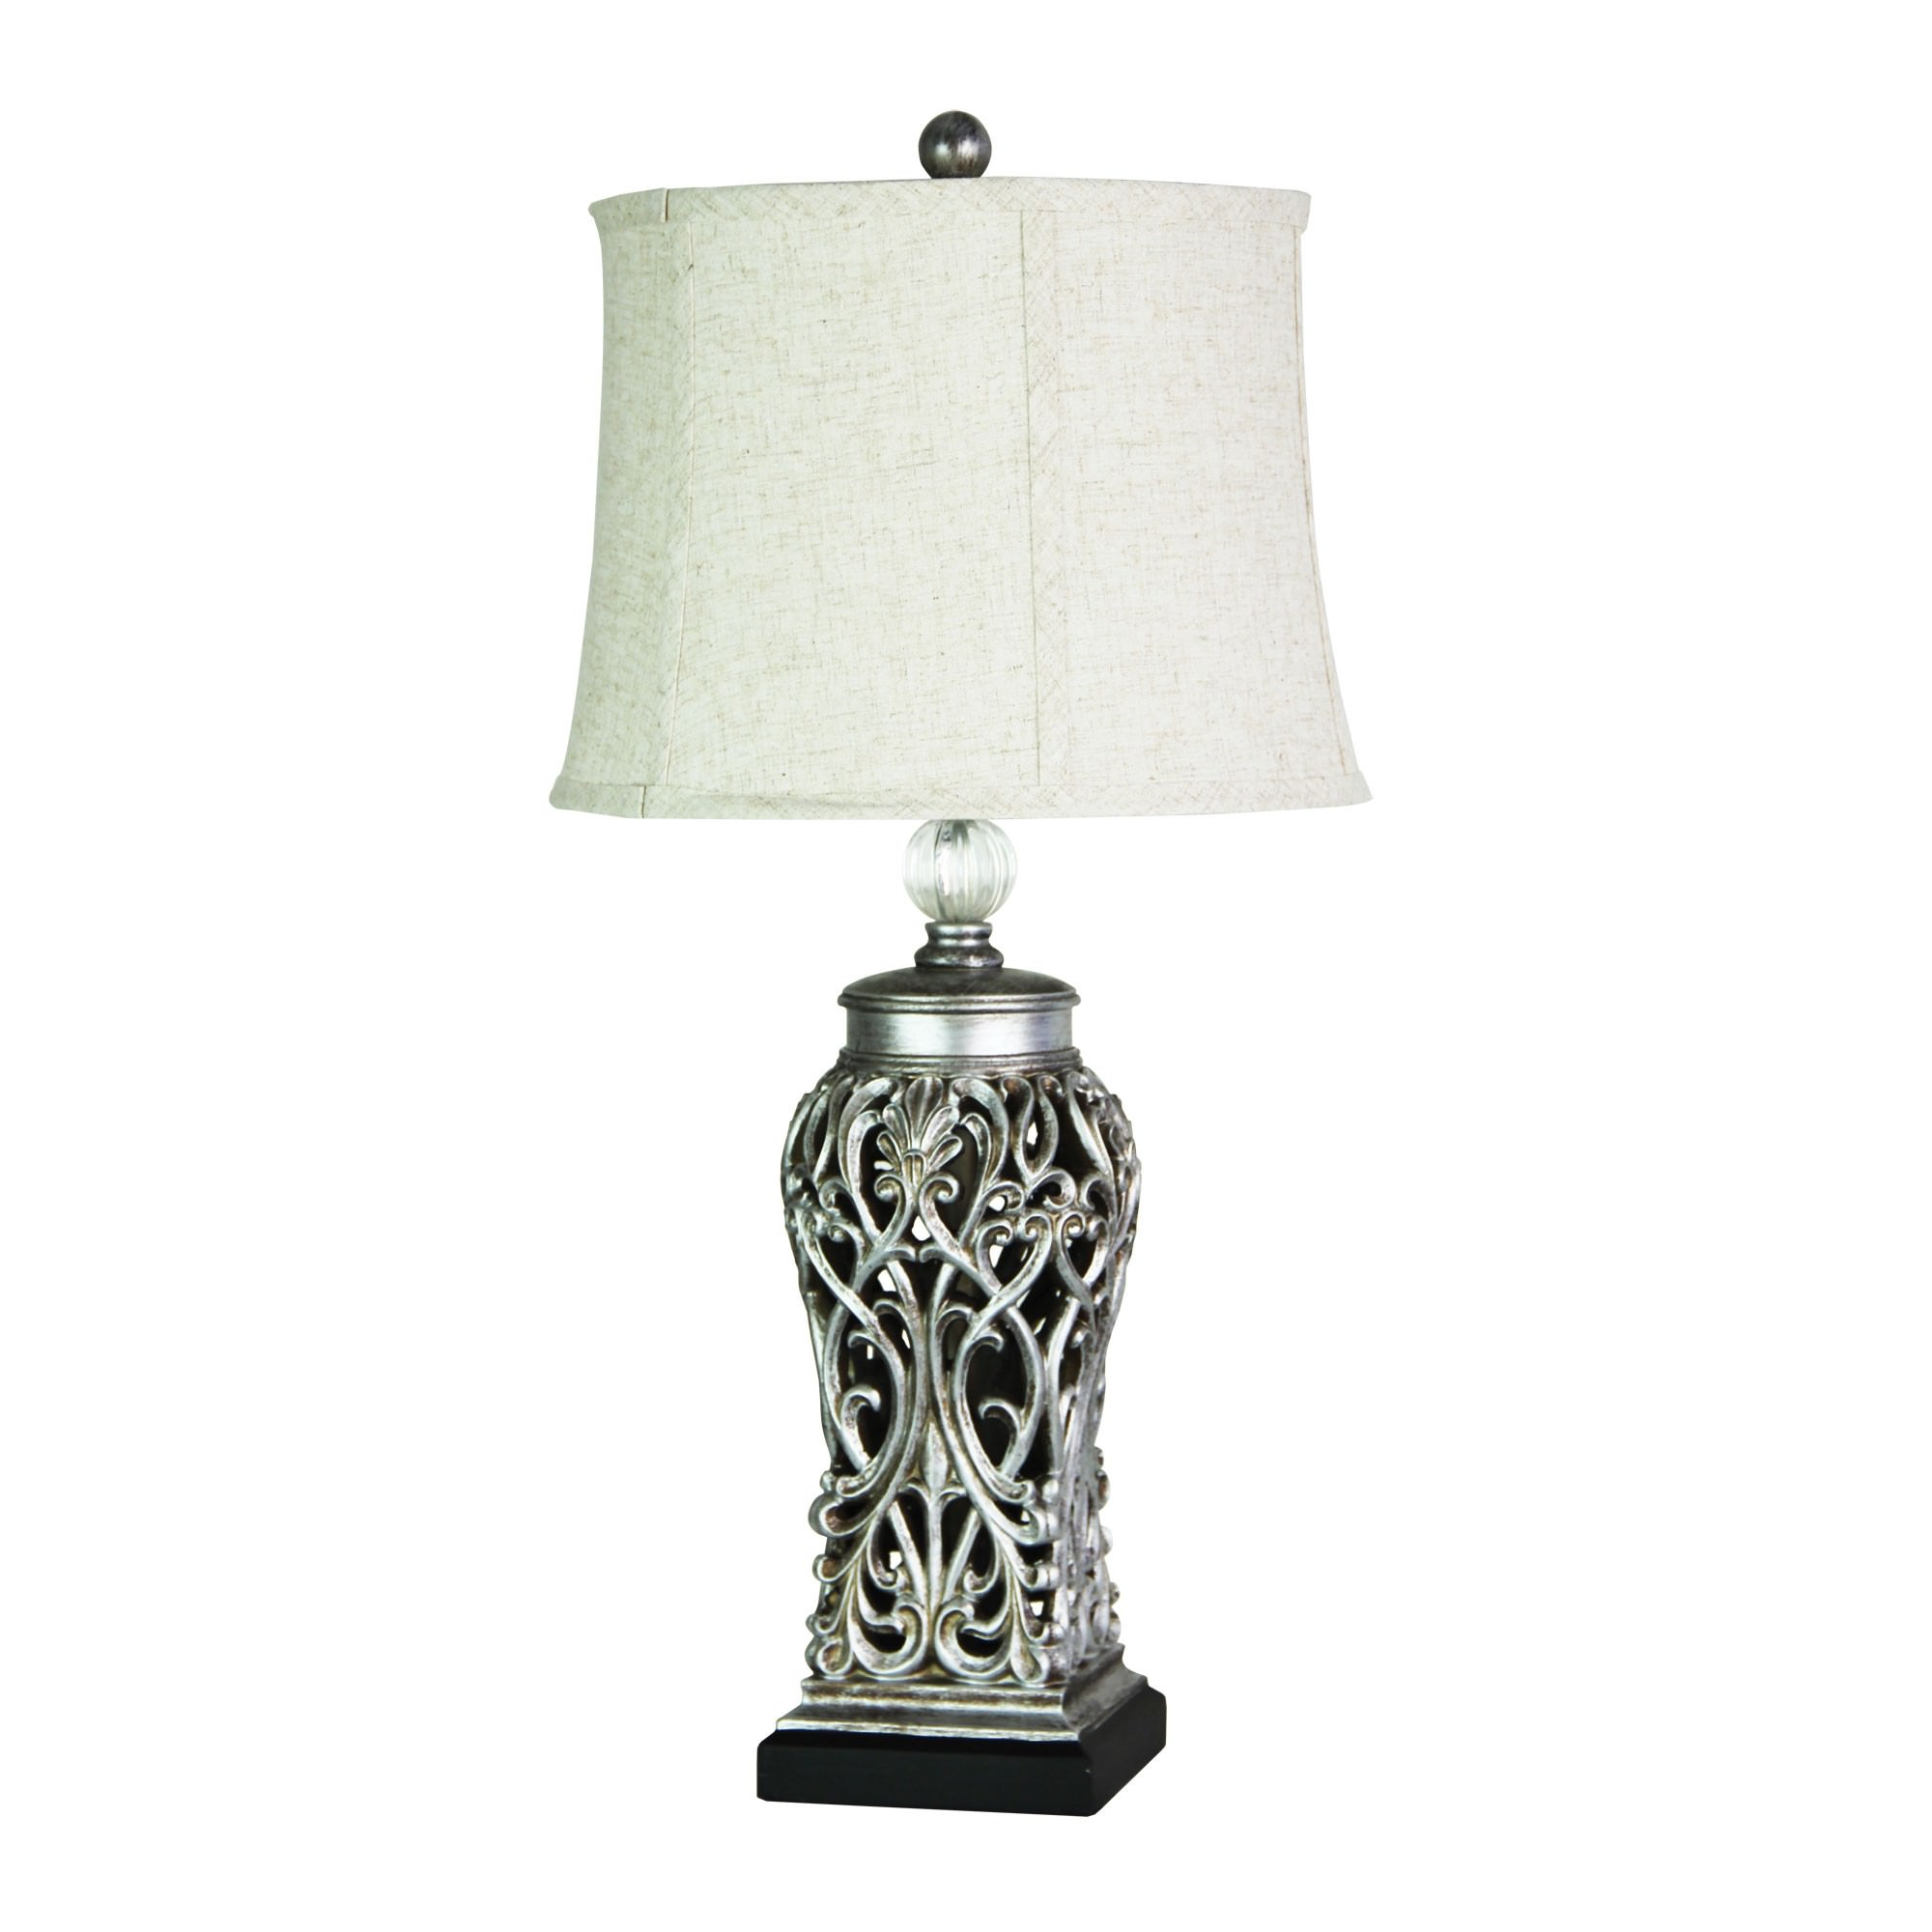 Dorne Filigree Base Table Lamp, Antique Silver